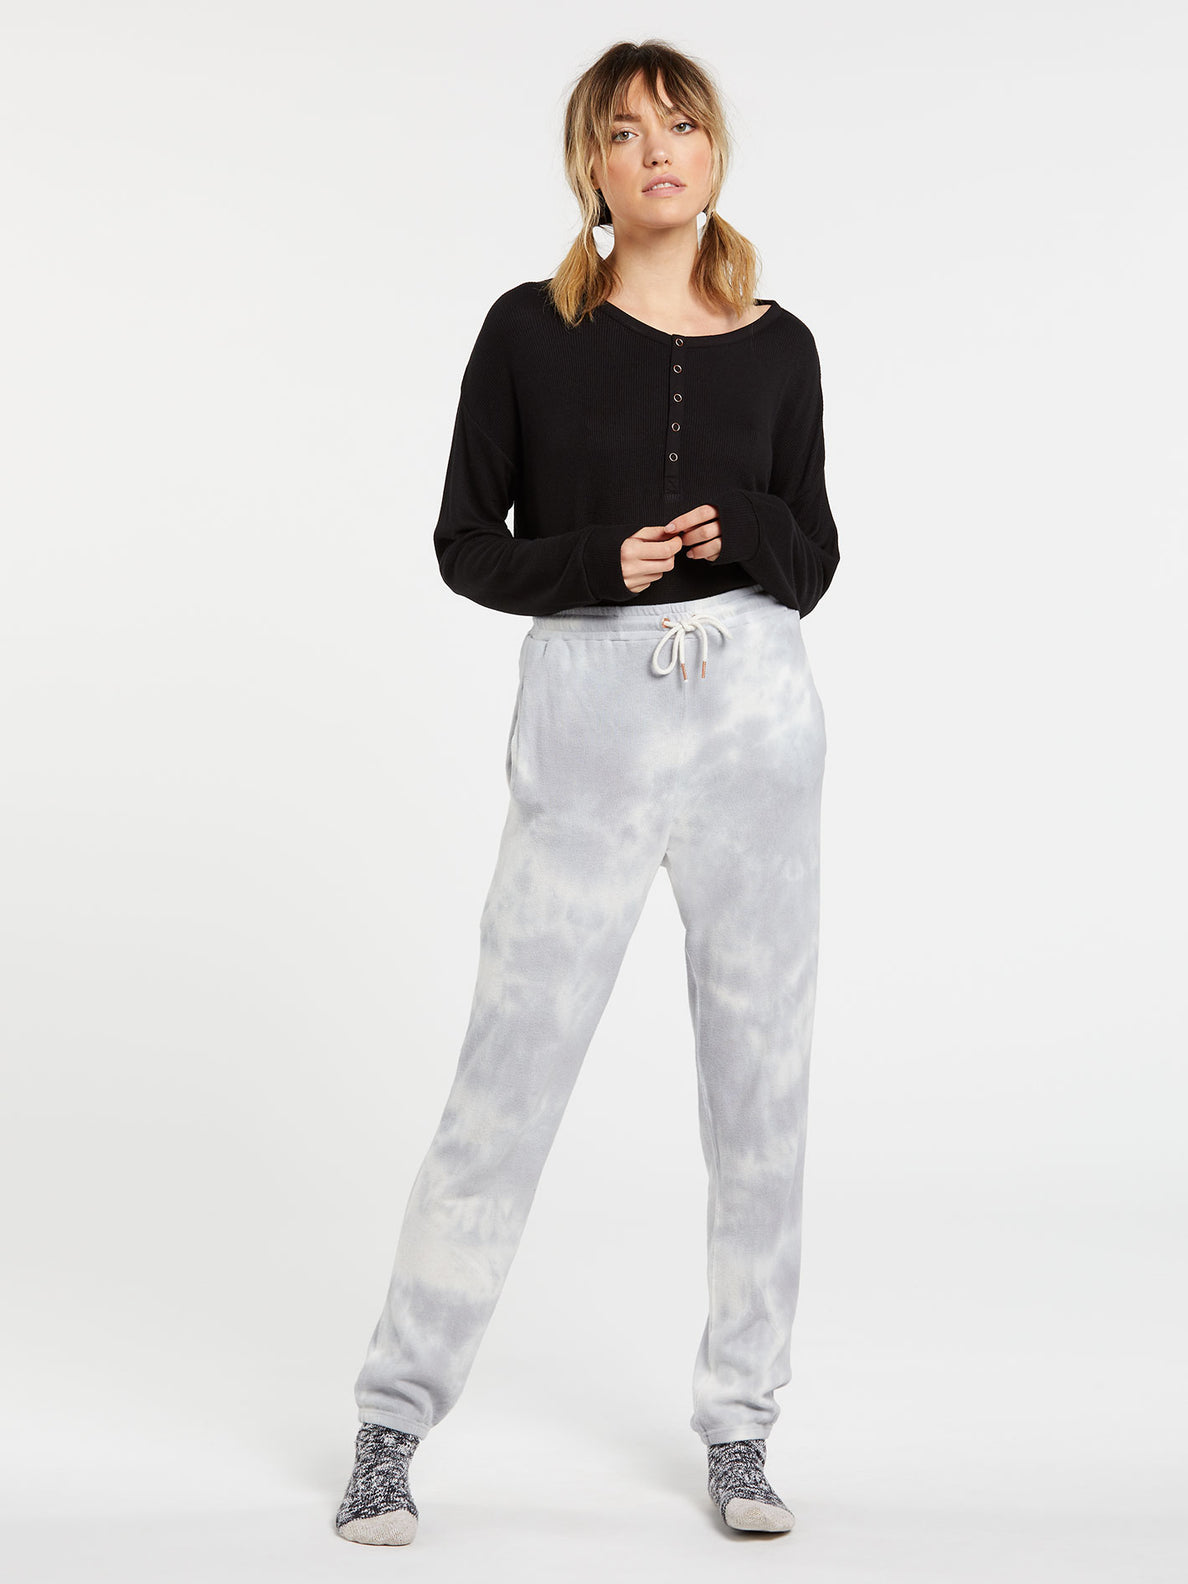 Lived In Lounge Fleece Pants - Multi (B1111801_MLT) [F]